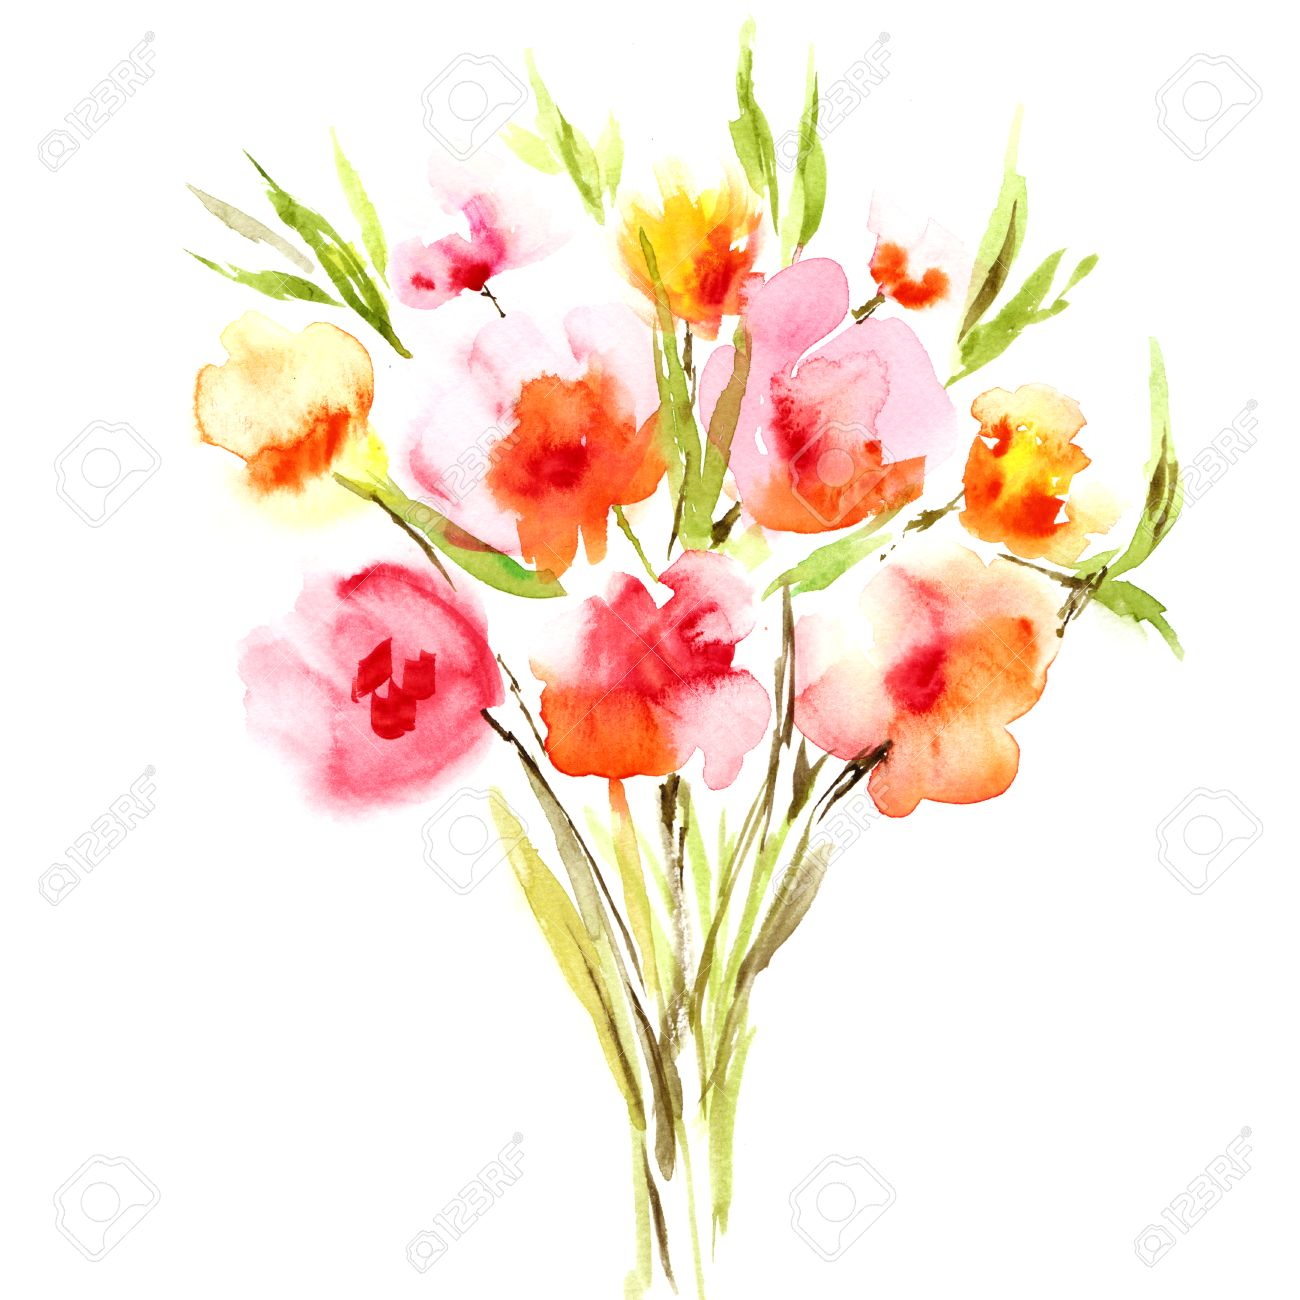 Flowers Watercolor Floral Bouquet Floral Background Birthday